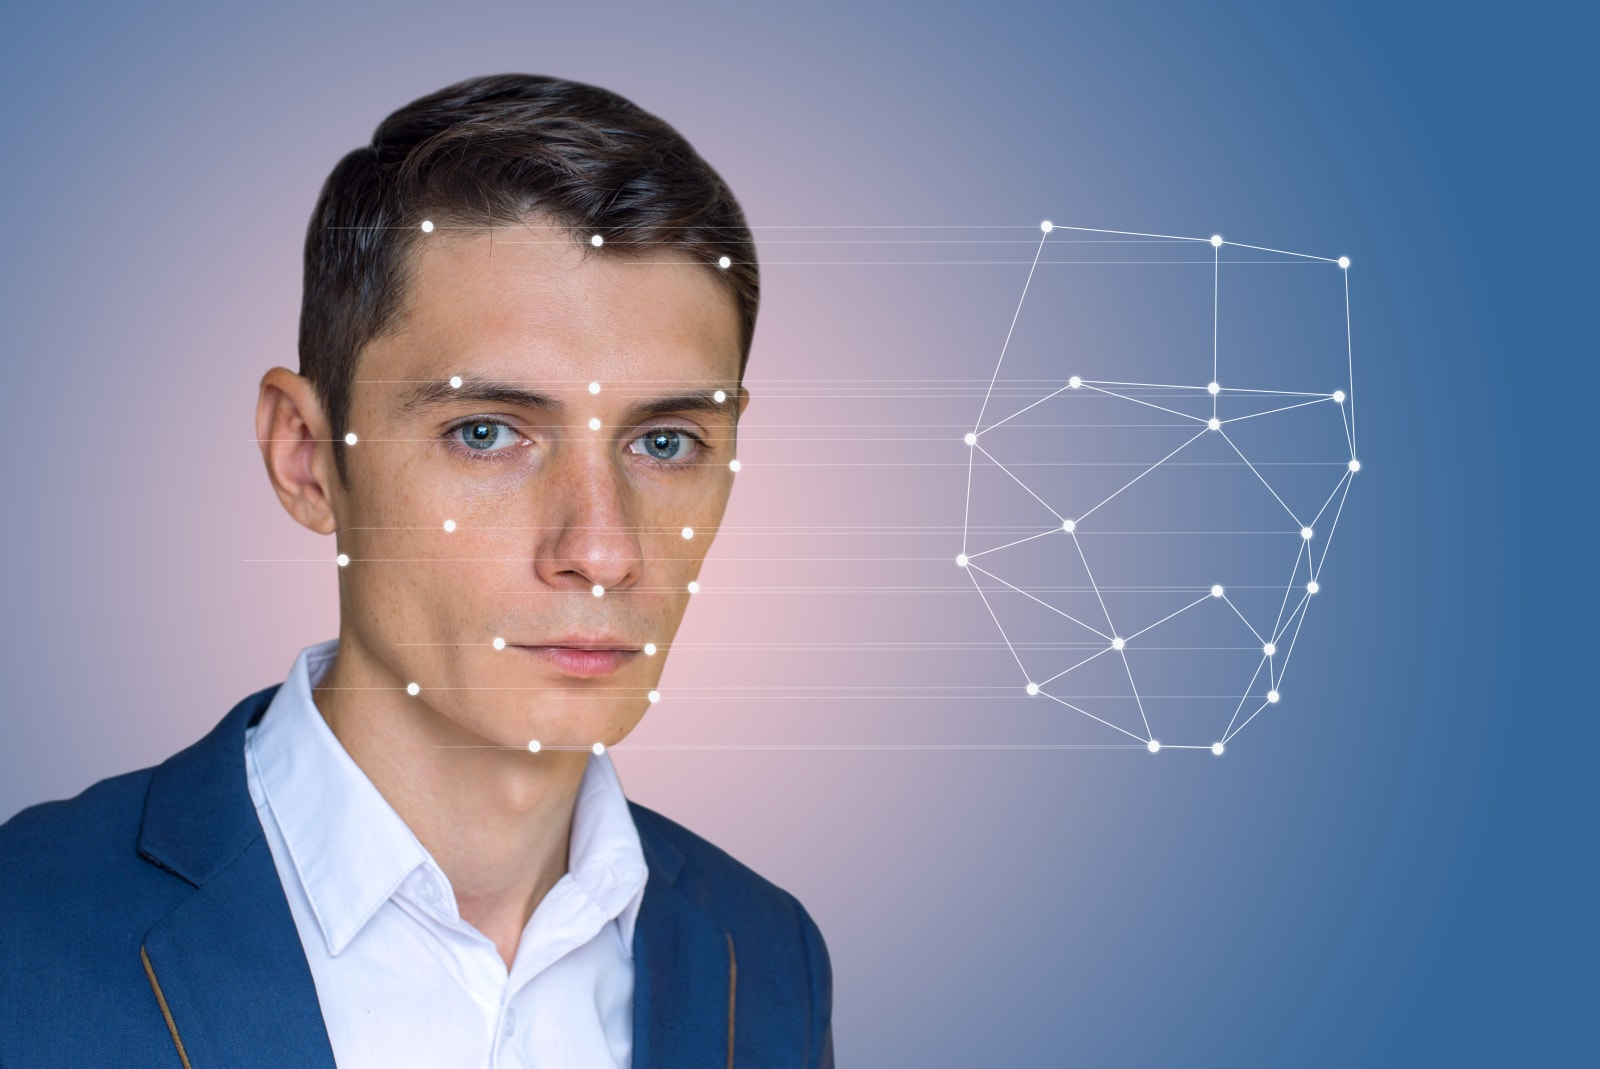 Facebook reportedly tests facial recognition to recover your